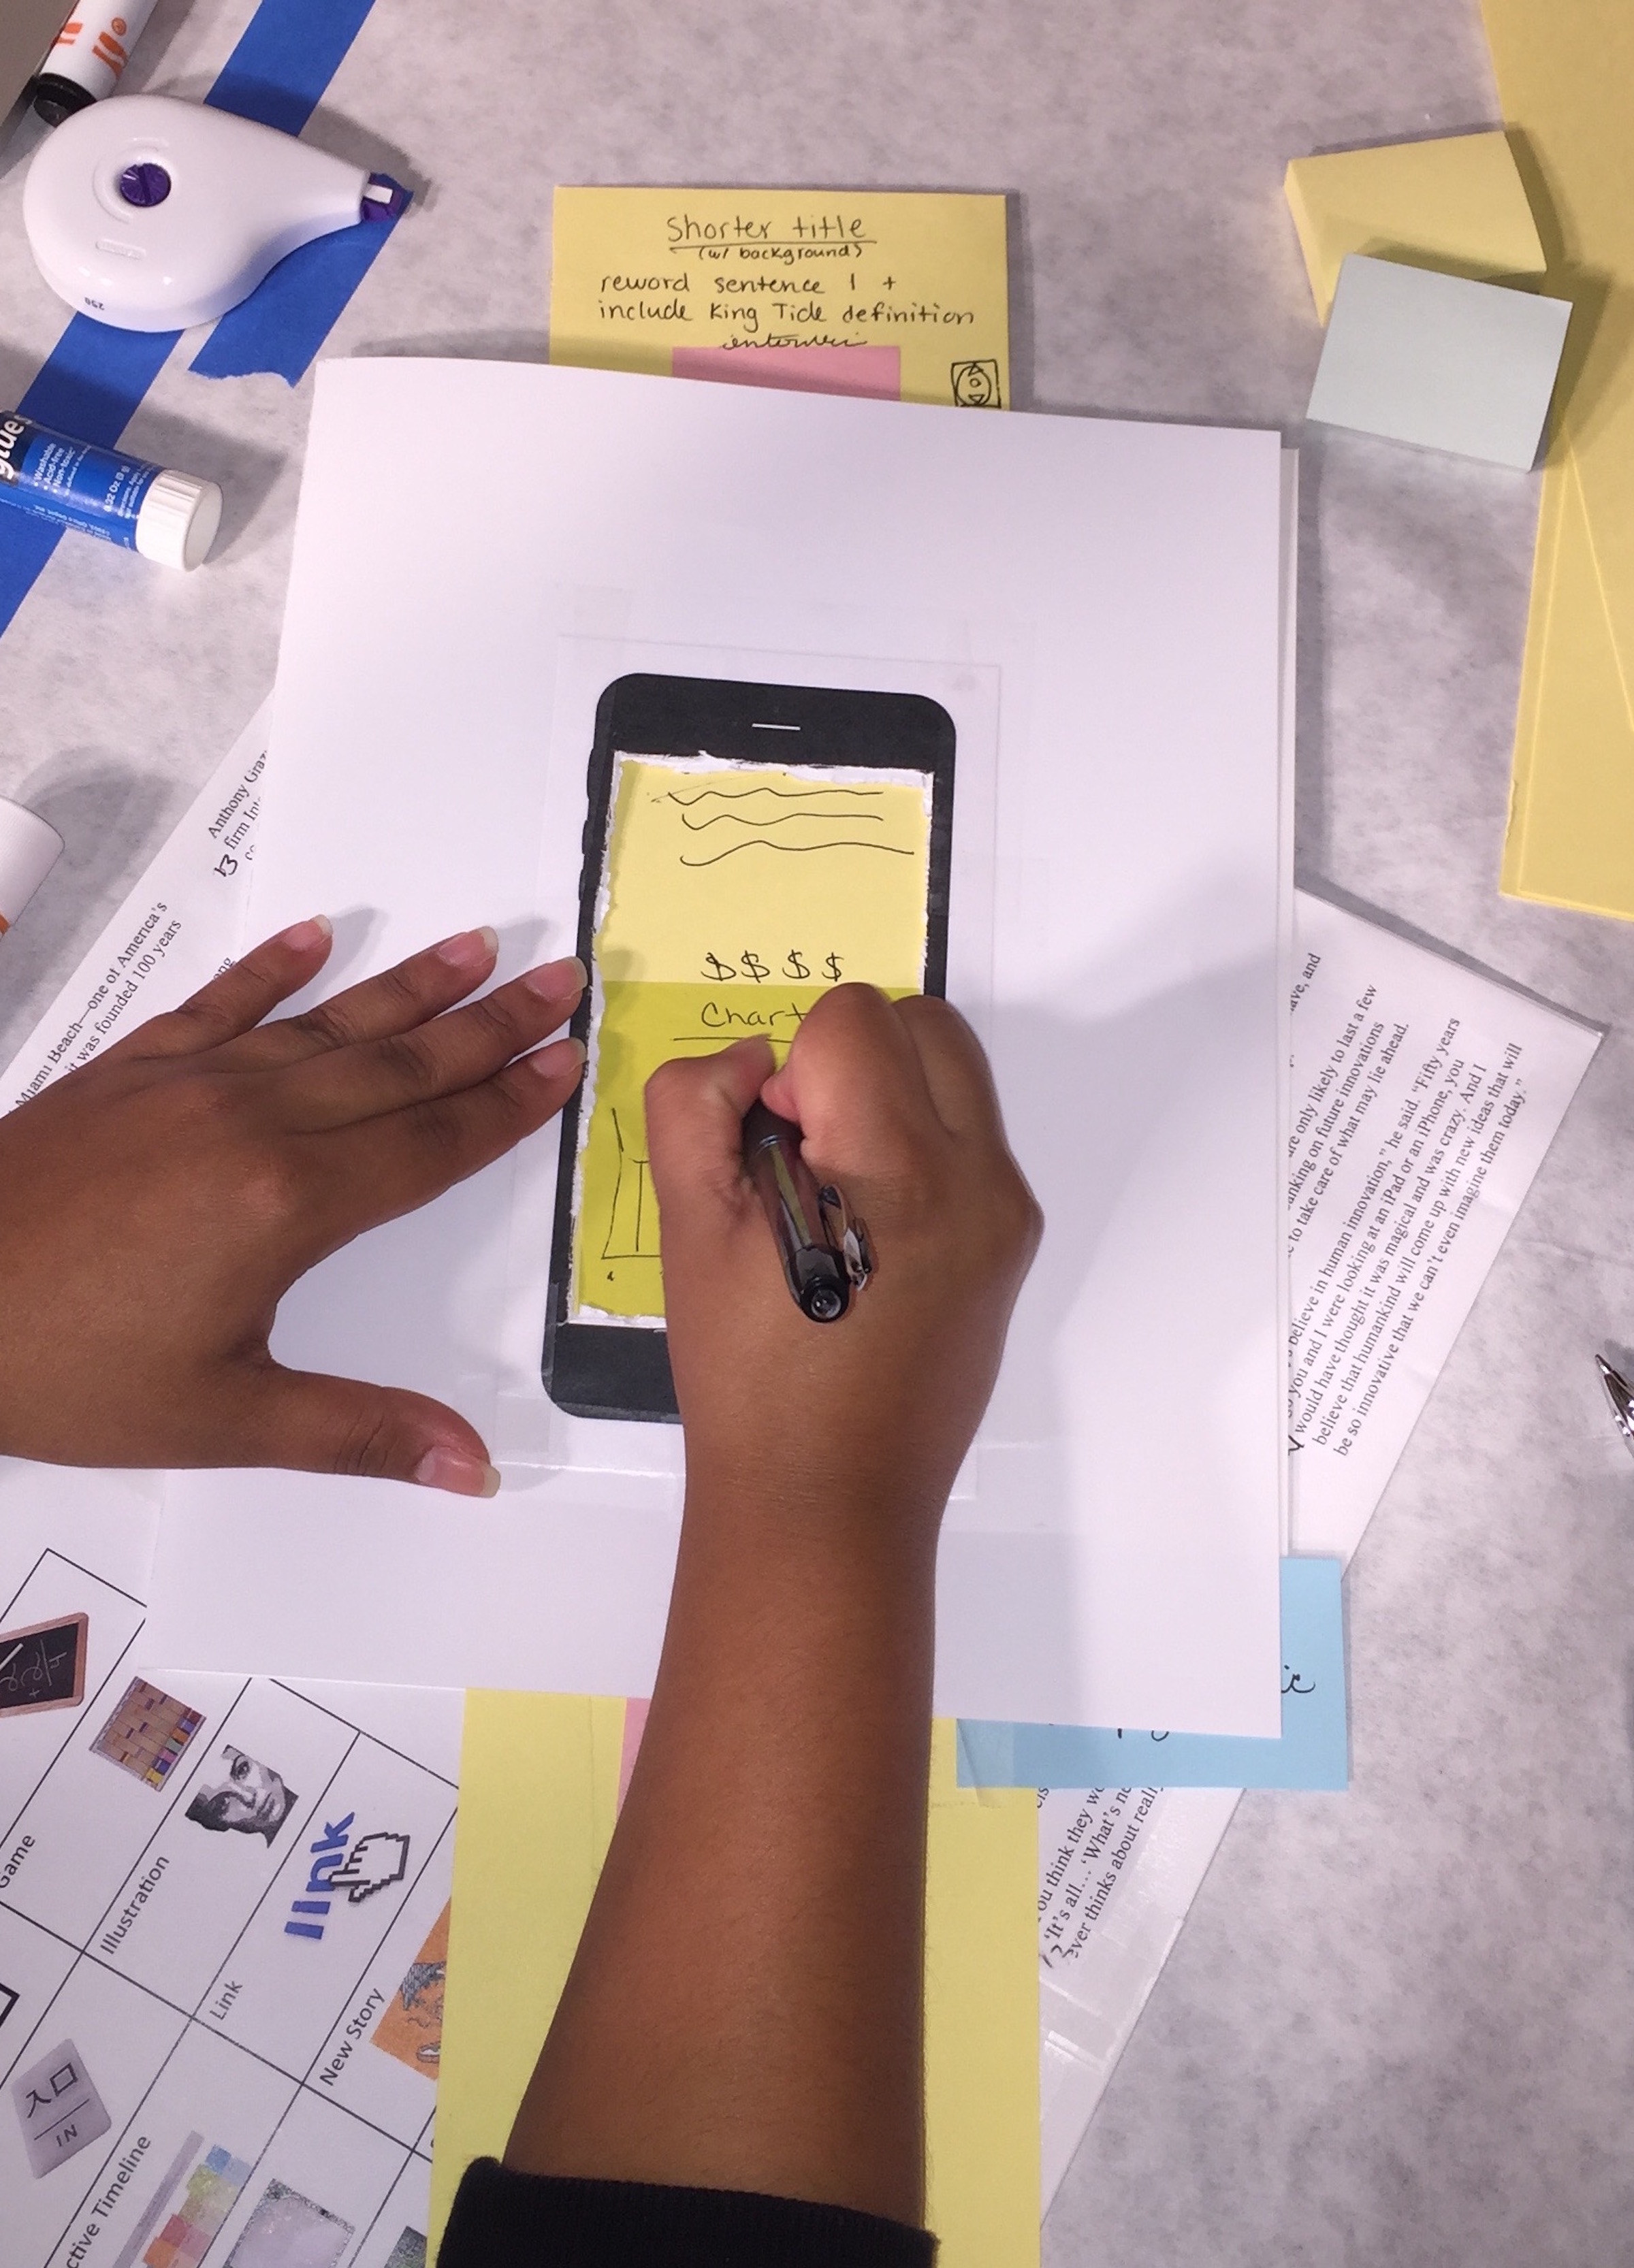 iphone research working paper Papers is your personal library of research on the go  papers 1 for ios library imports from working  notes to a paper on both ipad and iphone,.